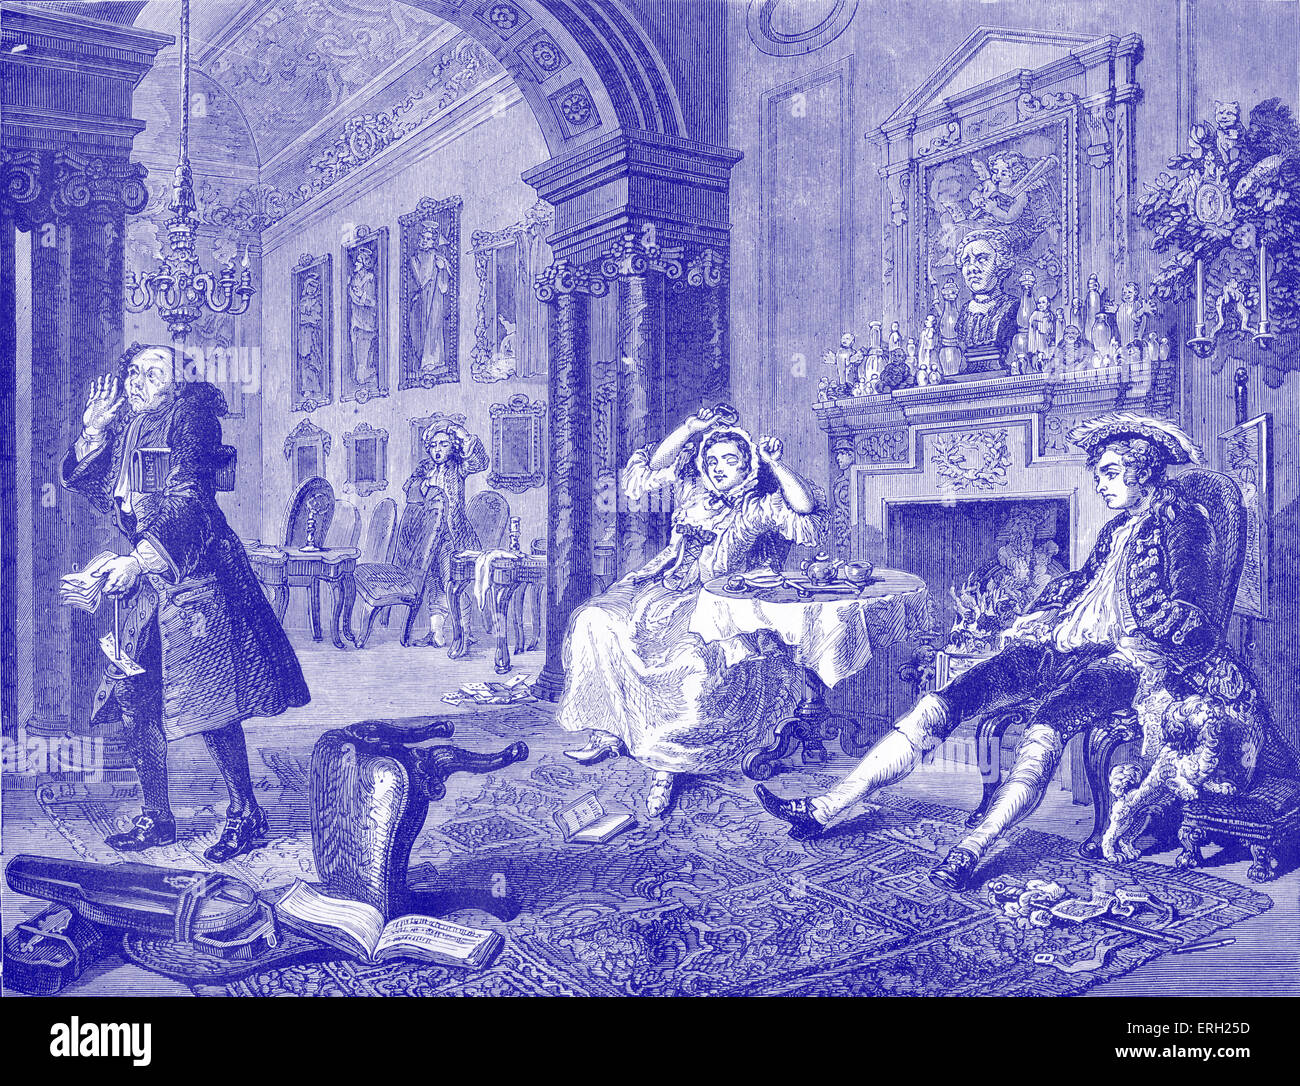 Marriage a la Mode - The morning after the grand entertainment. Engraving by William Hogarth, English artist, painter - Stock Image